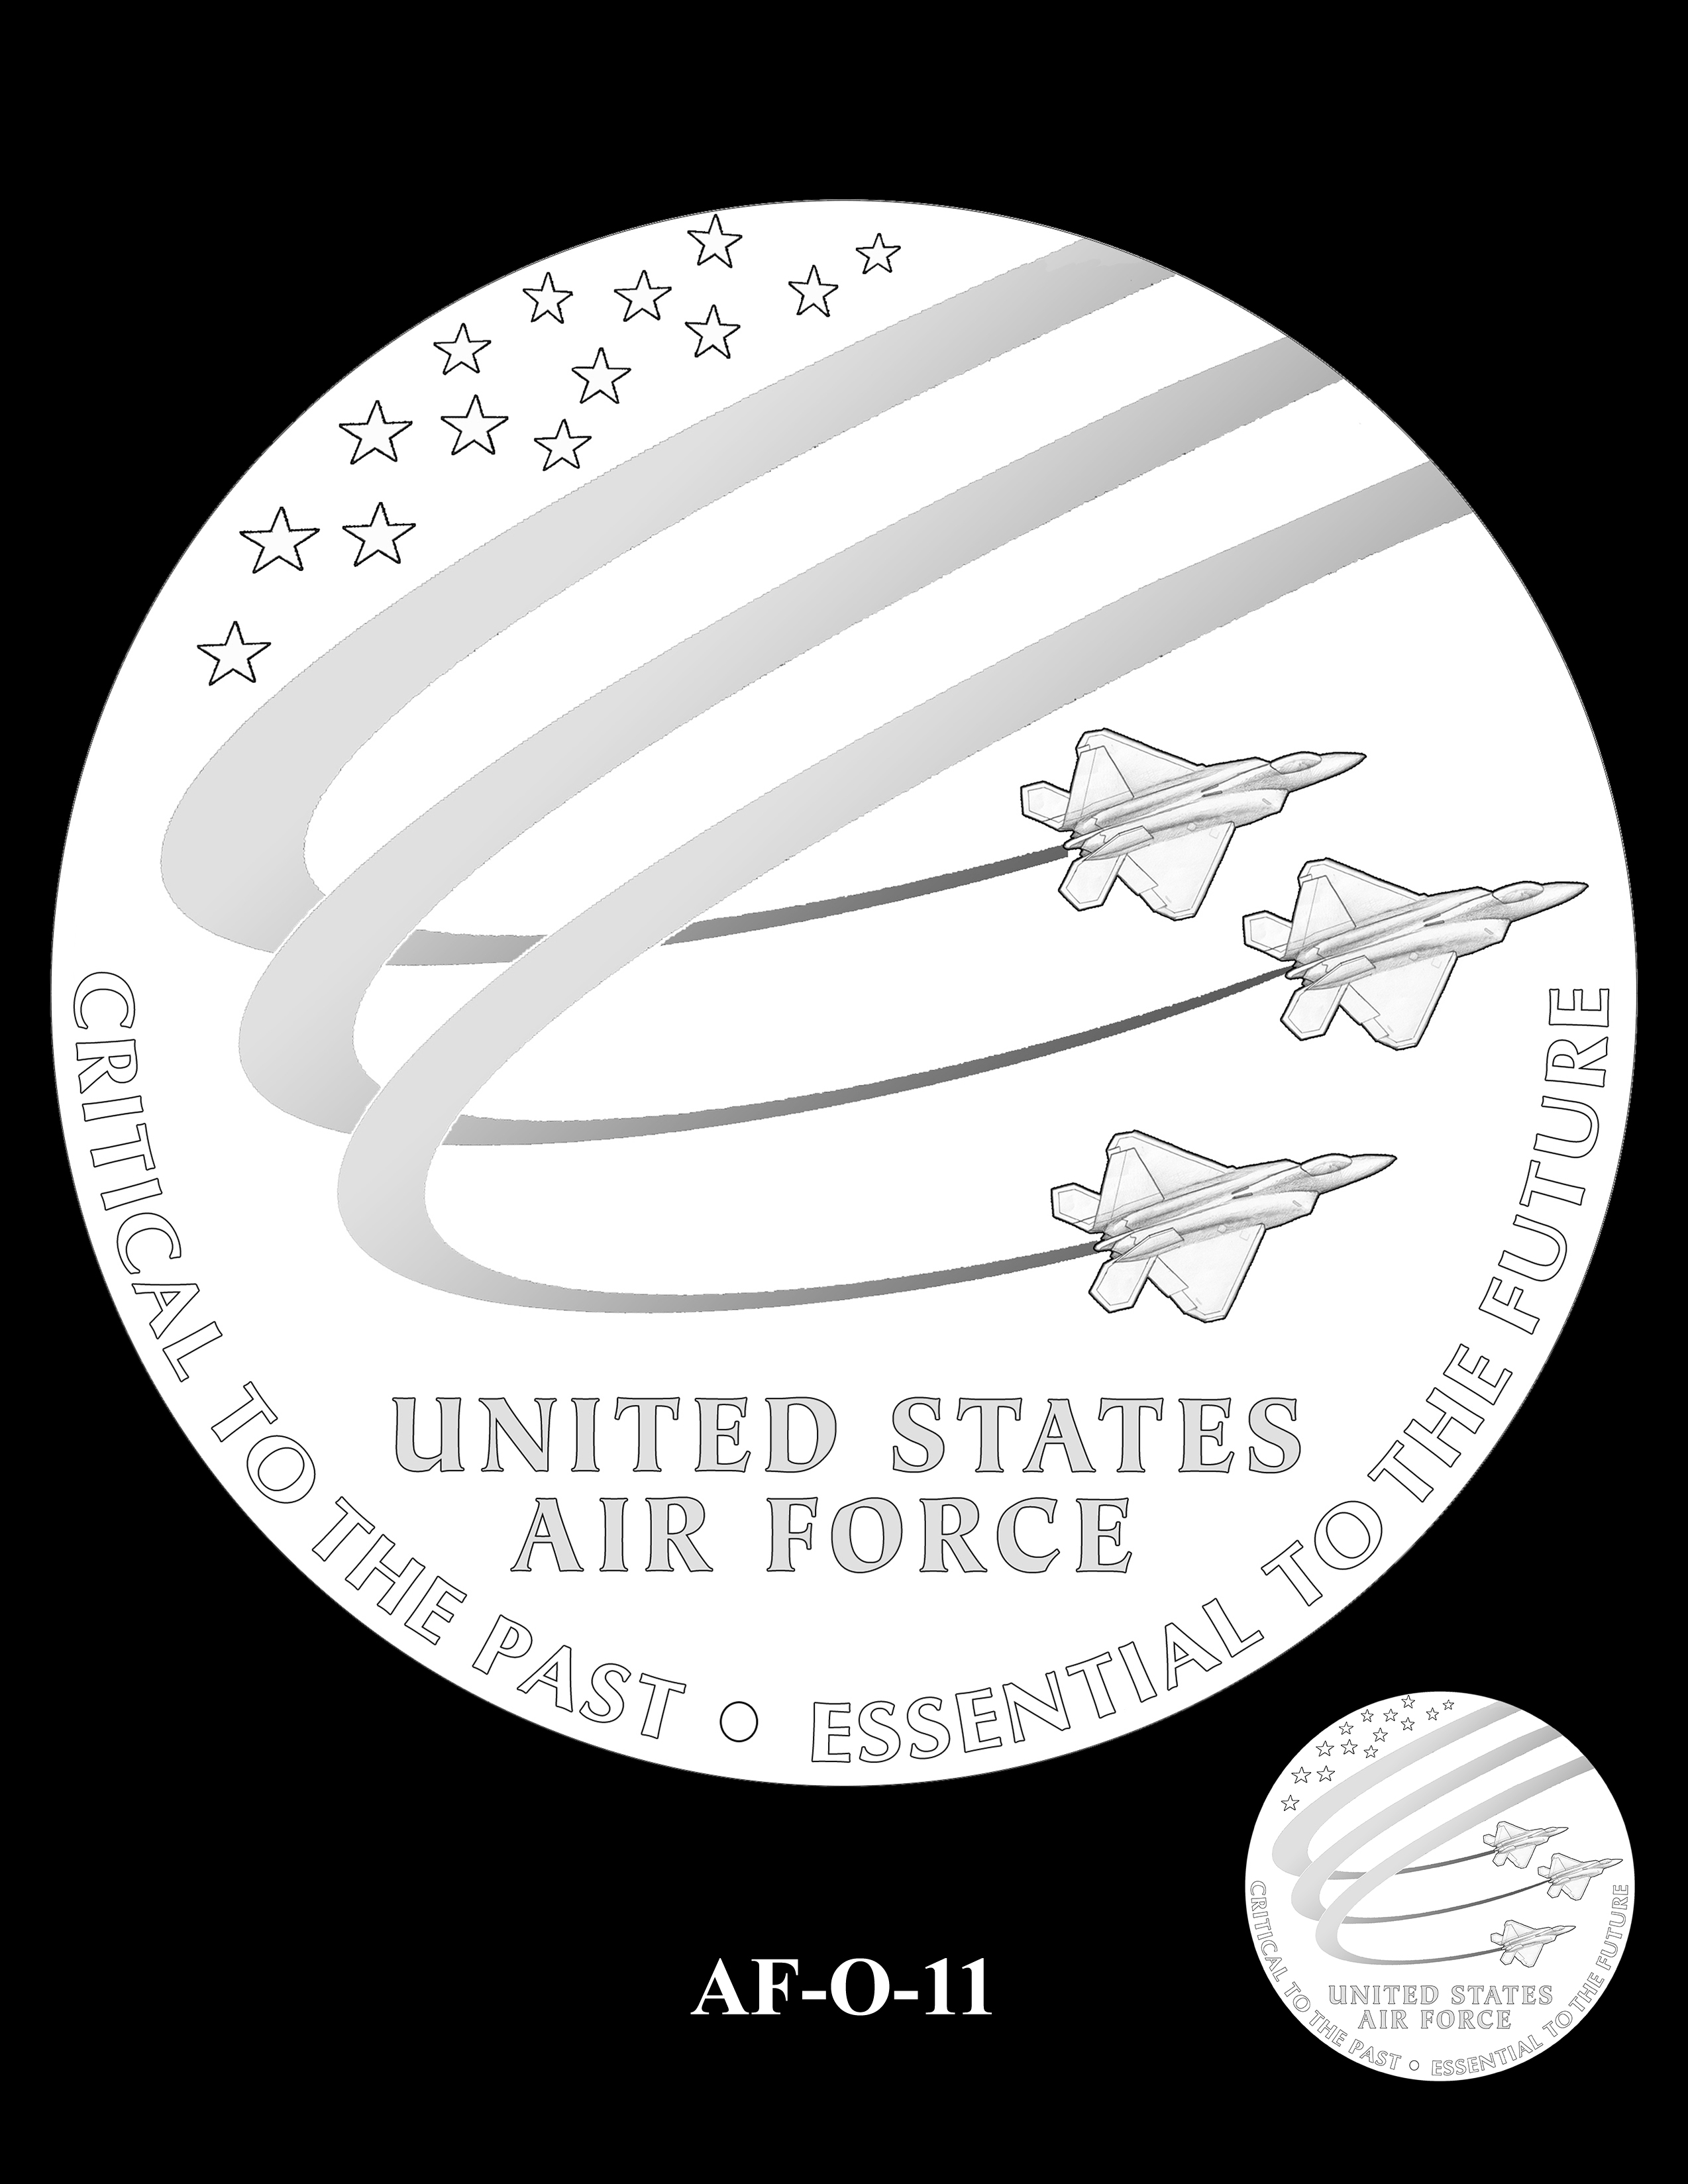 AF-O-11 -- Armed Forces Medal - Air Force